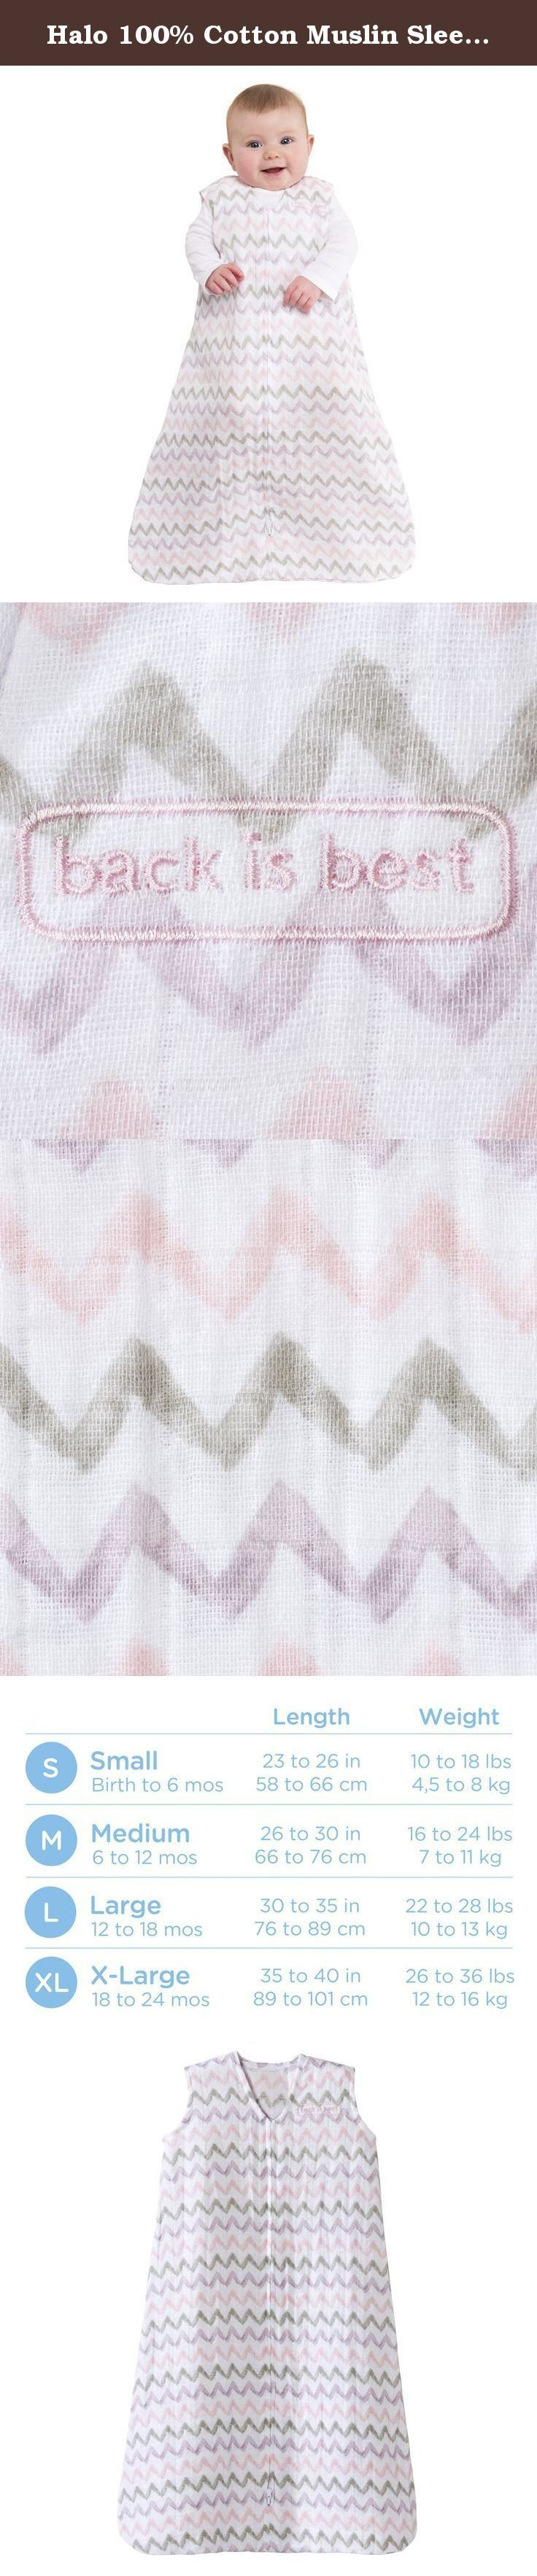 Halo 100% Cotton Muslin SleepSack Wearable Blanket, Pink Chevron, Medium. The HALO SleepSack wearable blanket replaces loose blankets in the crib that can cover your baby's face and interfere with breathing. In addition to helping your baby sleep safer, the HALO SleepSack wearable blanket helps your baby sleep better, too. It is a cuddly blanket they cannot kick off; ensuring baby sleeps soundly throughout the night. Made with two layers of lightweight 100% cotton muslin, it is…